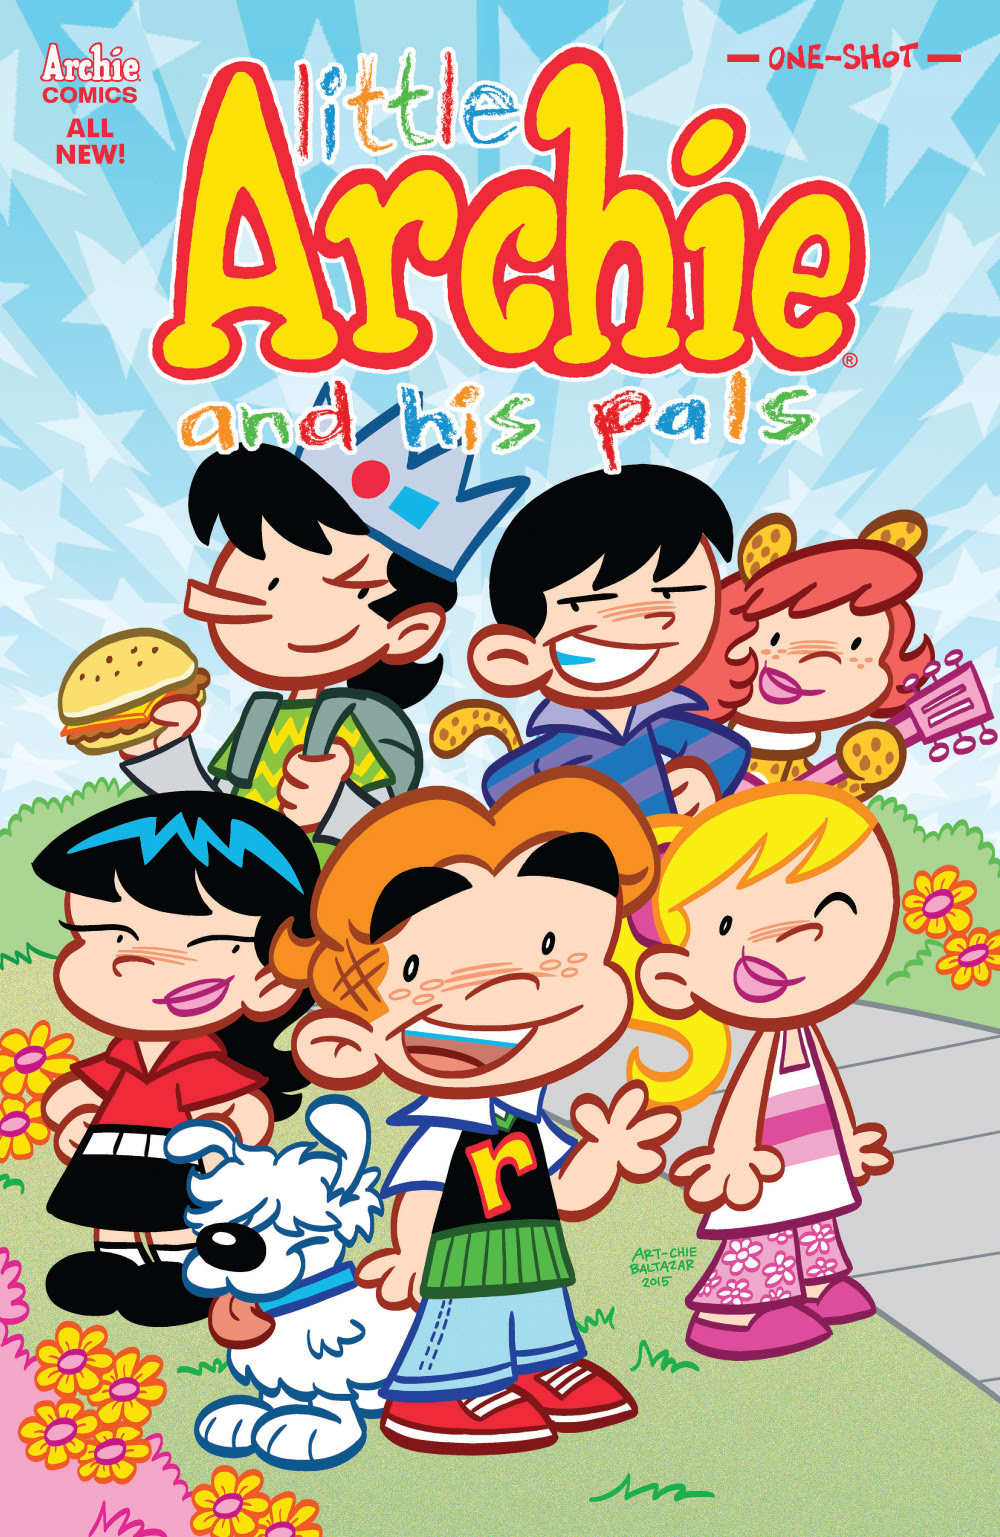 Little Archie Cover